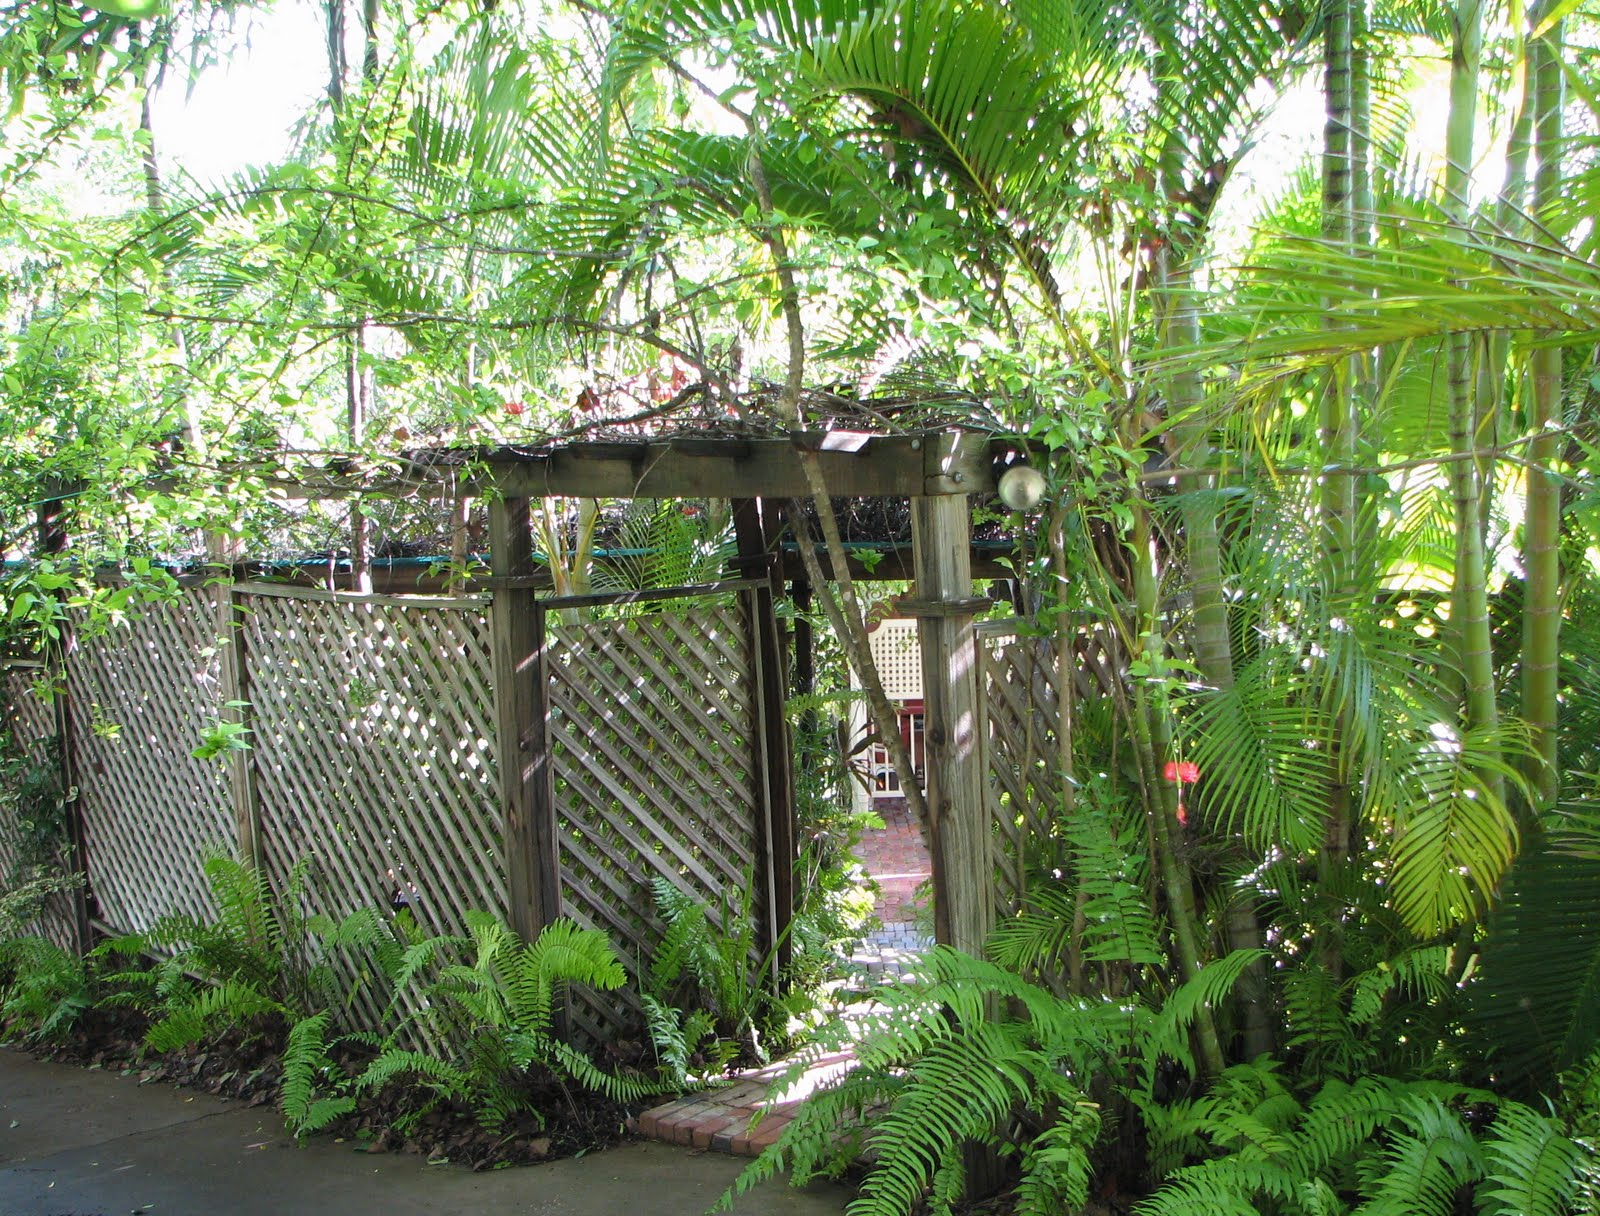 My dry tropics garden my place part 2 the courtyard for Courtyard gardens australia